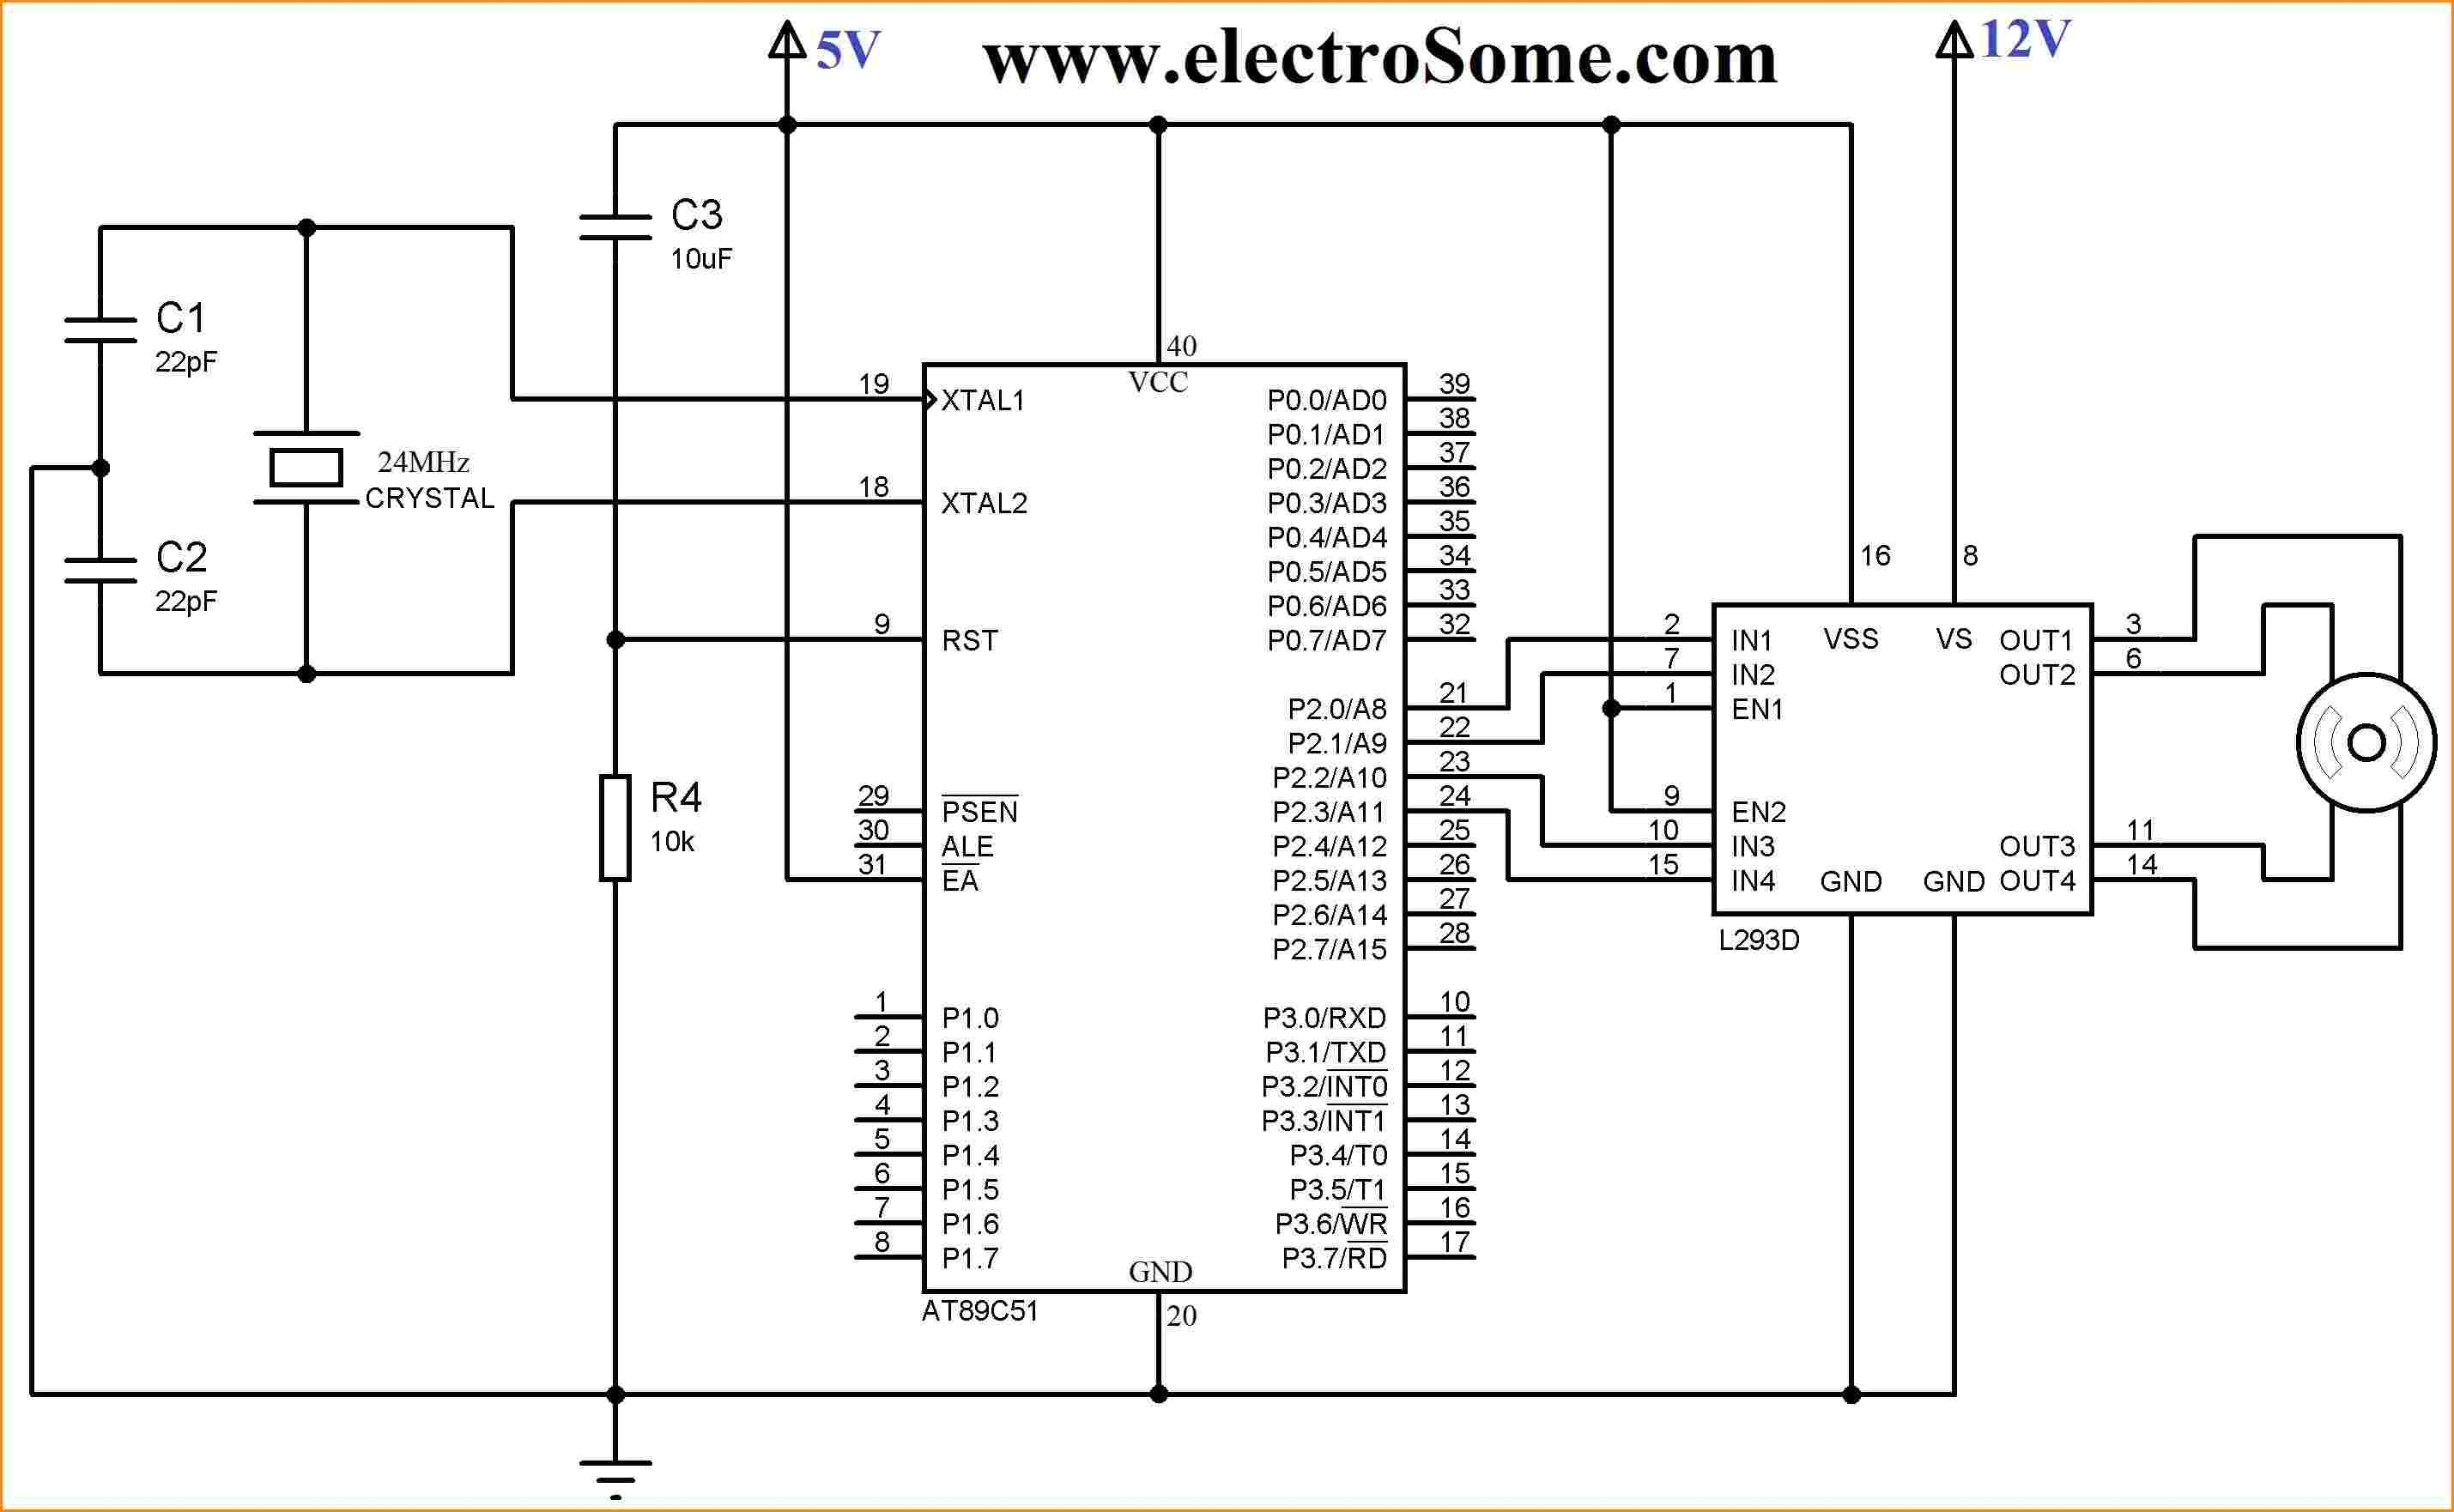 Swann Security Camera Wiring Diagram - Swann Security Camera N3960 Wiring Diagram Swann Security Camera N3960 Wiring Diagram Collection Security Camera 9o